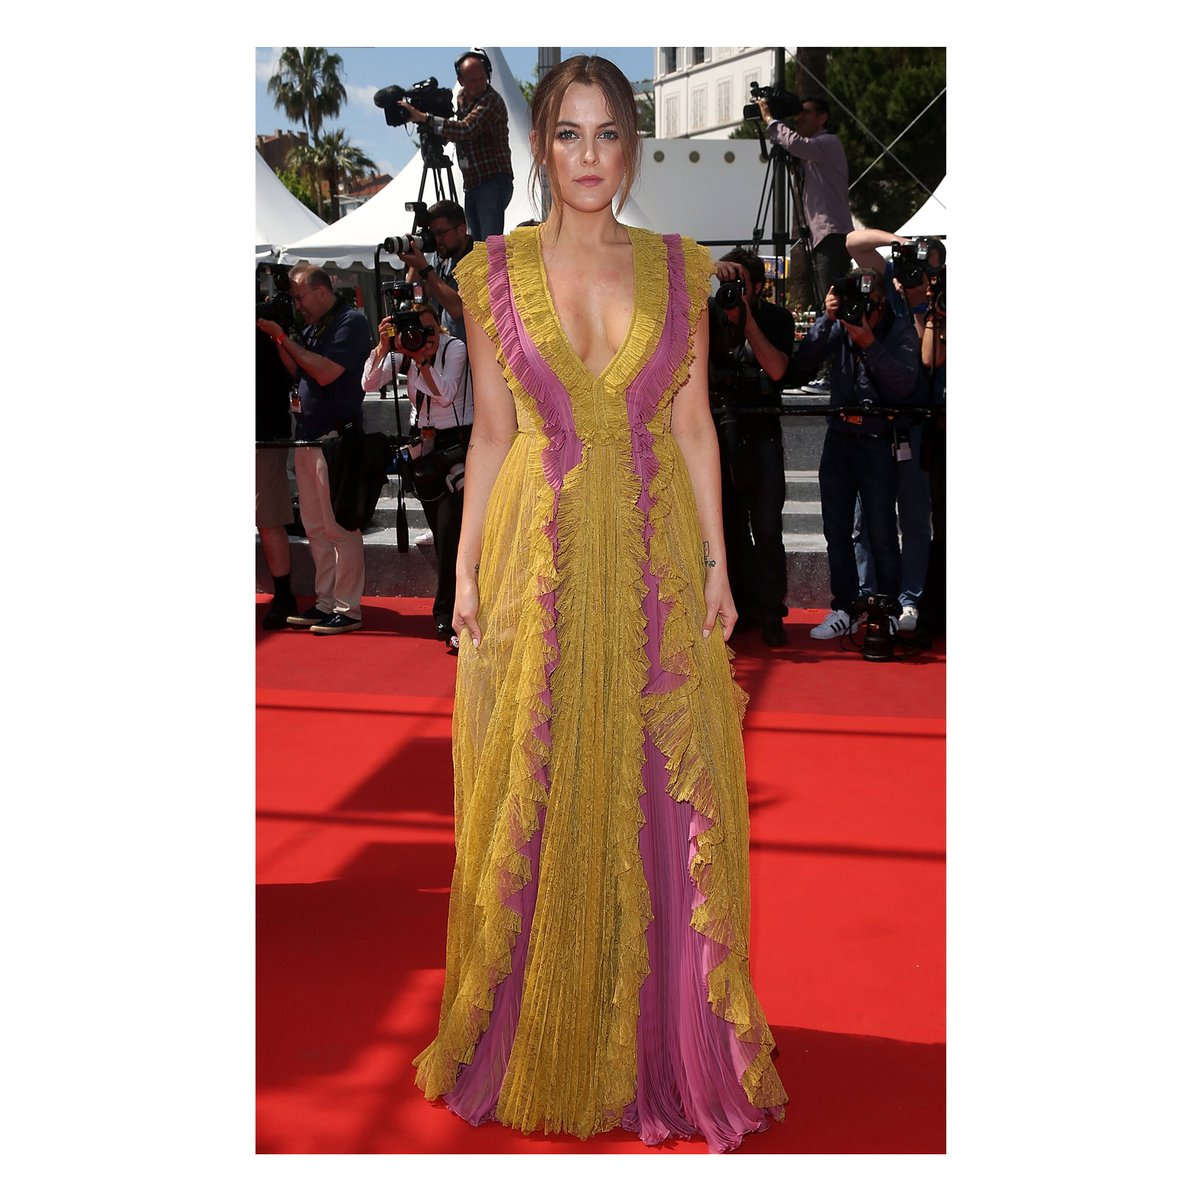 a8bf0e966790b4 in a guccicruise16 silk and lace gown rileykeough at the american honey  premiere at cannesfilmfestival